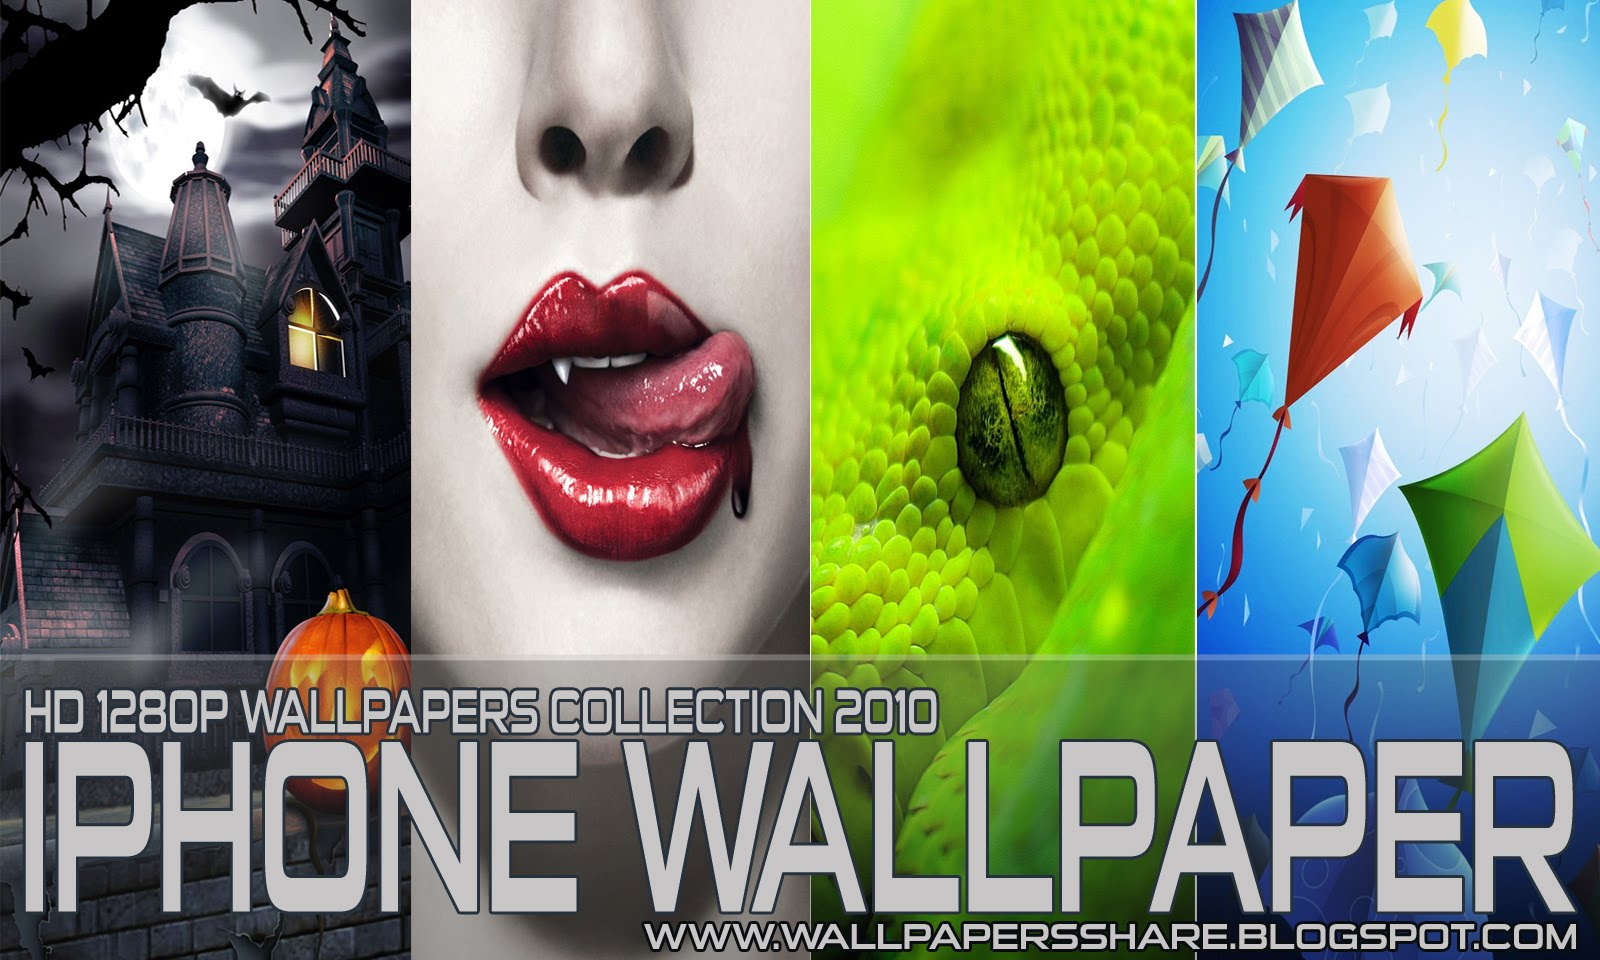 Best iPhone Wallpapers for iPhone 4   iPhone 3GS   iPod Touch Screen 1600x960